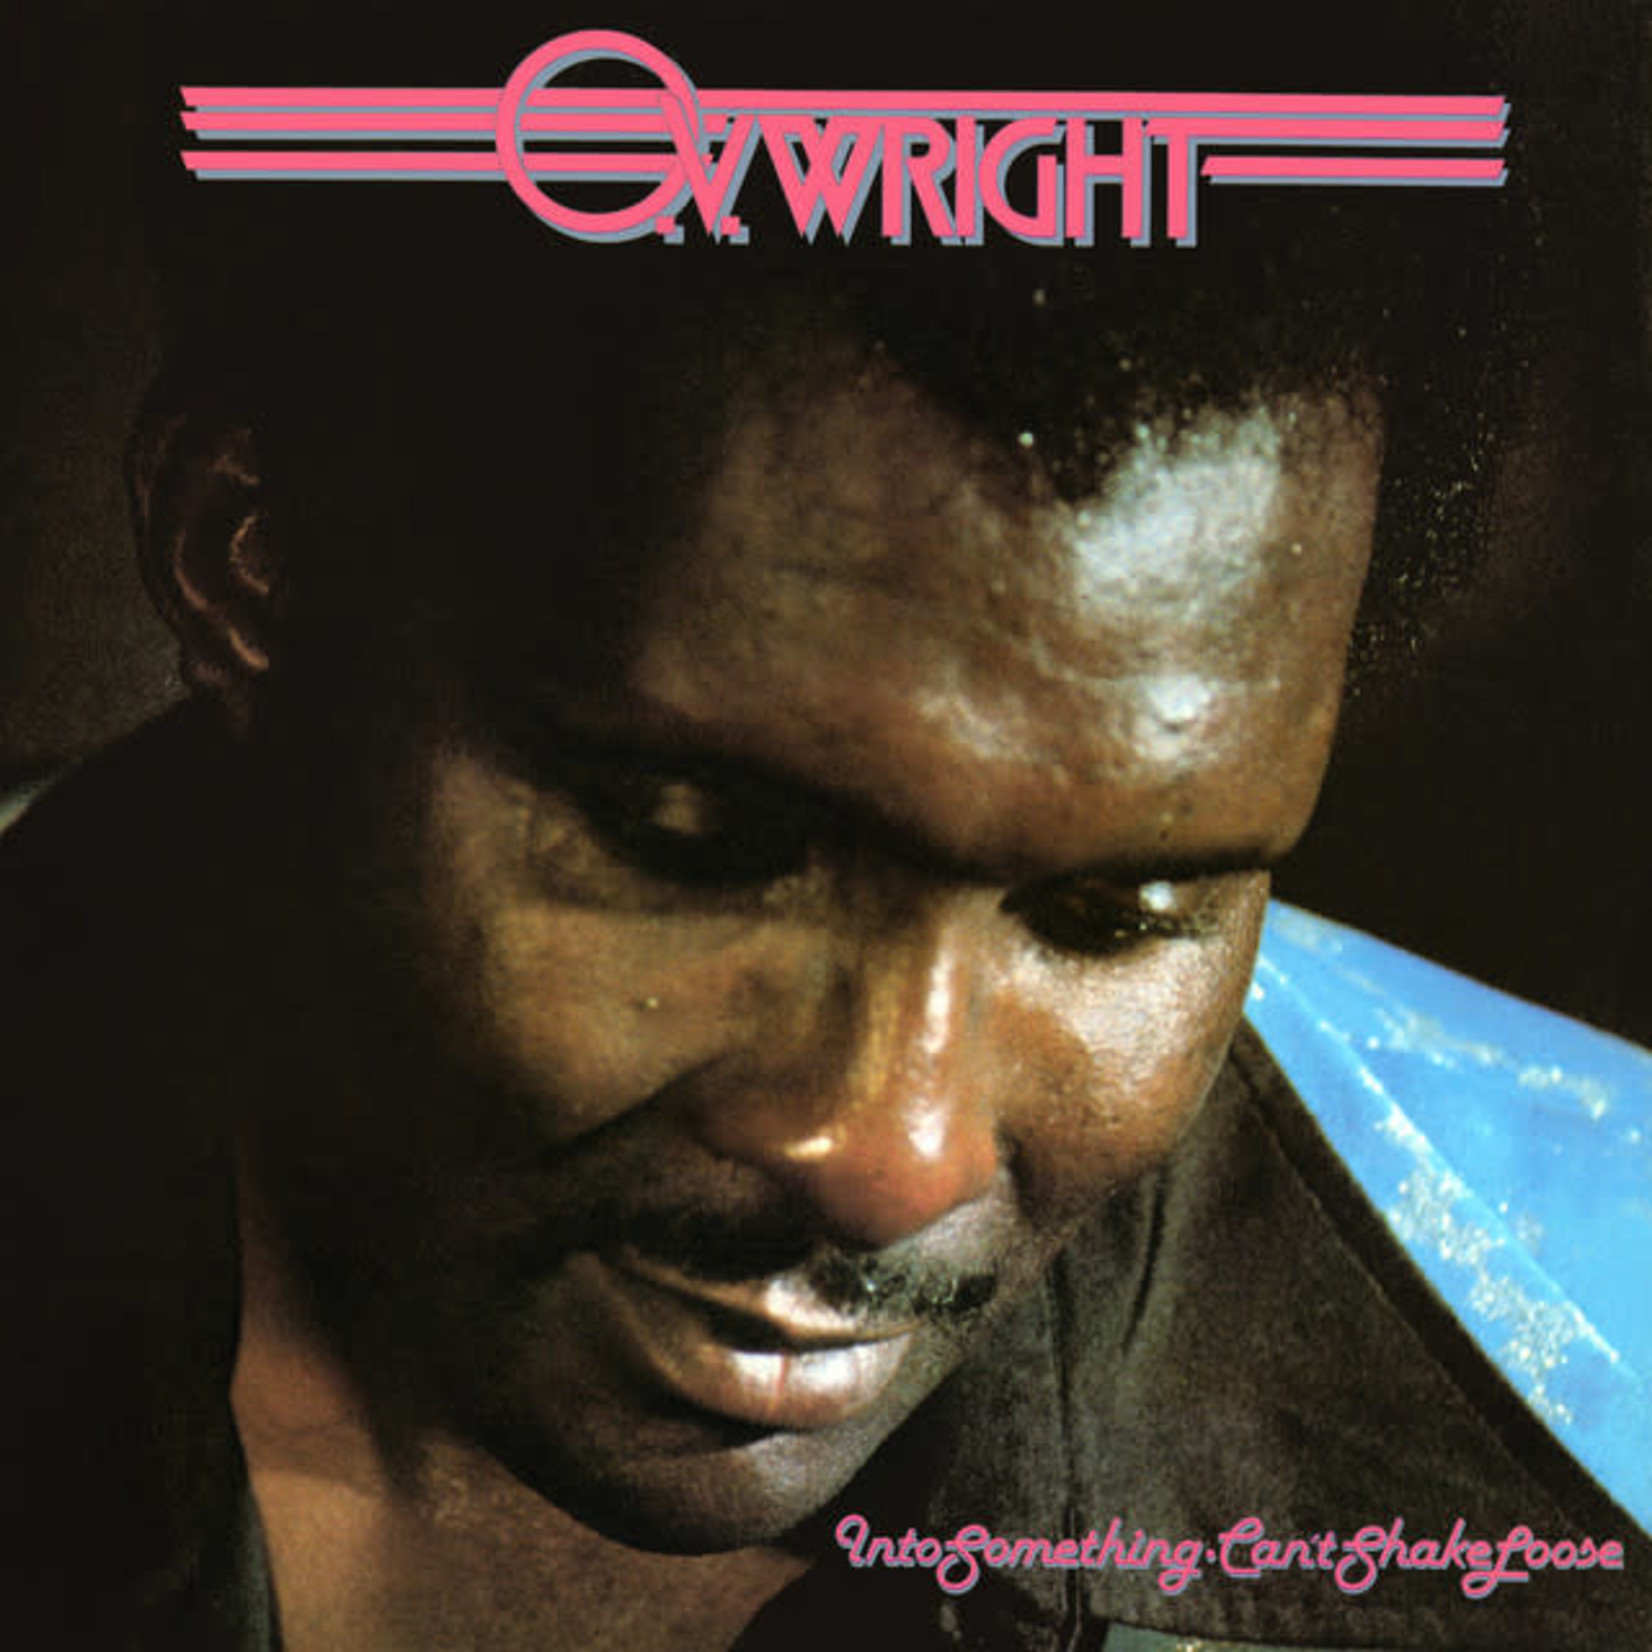 Vinyl O.V. Wright - Into Something - Can't Shake Loose